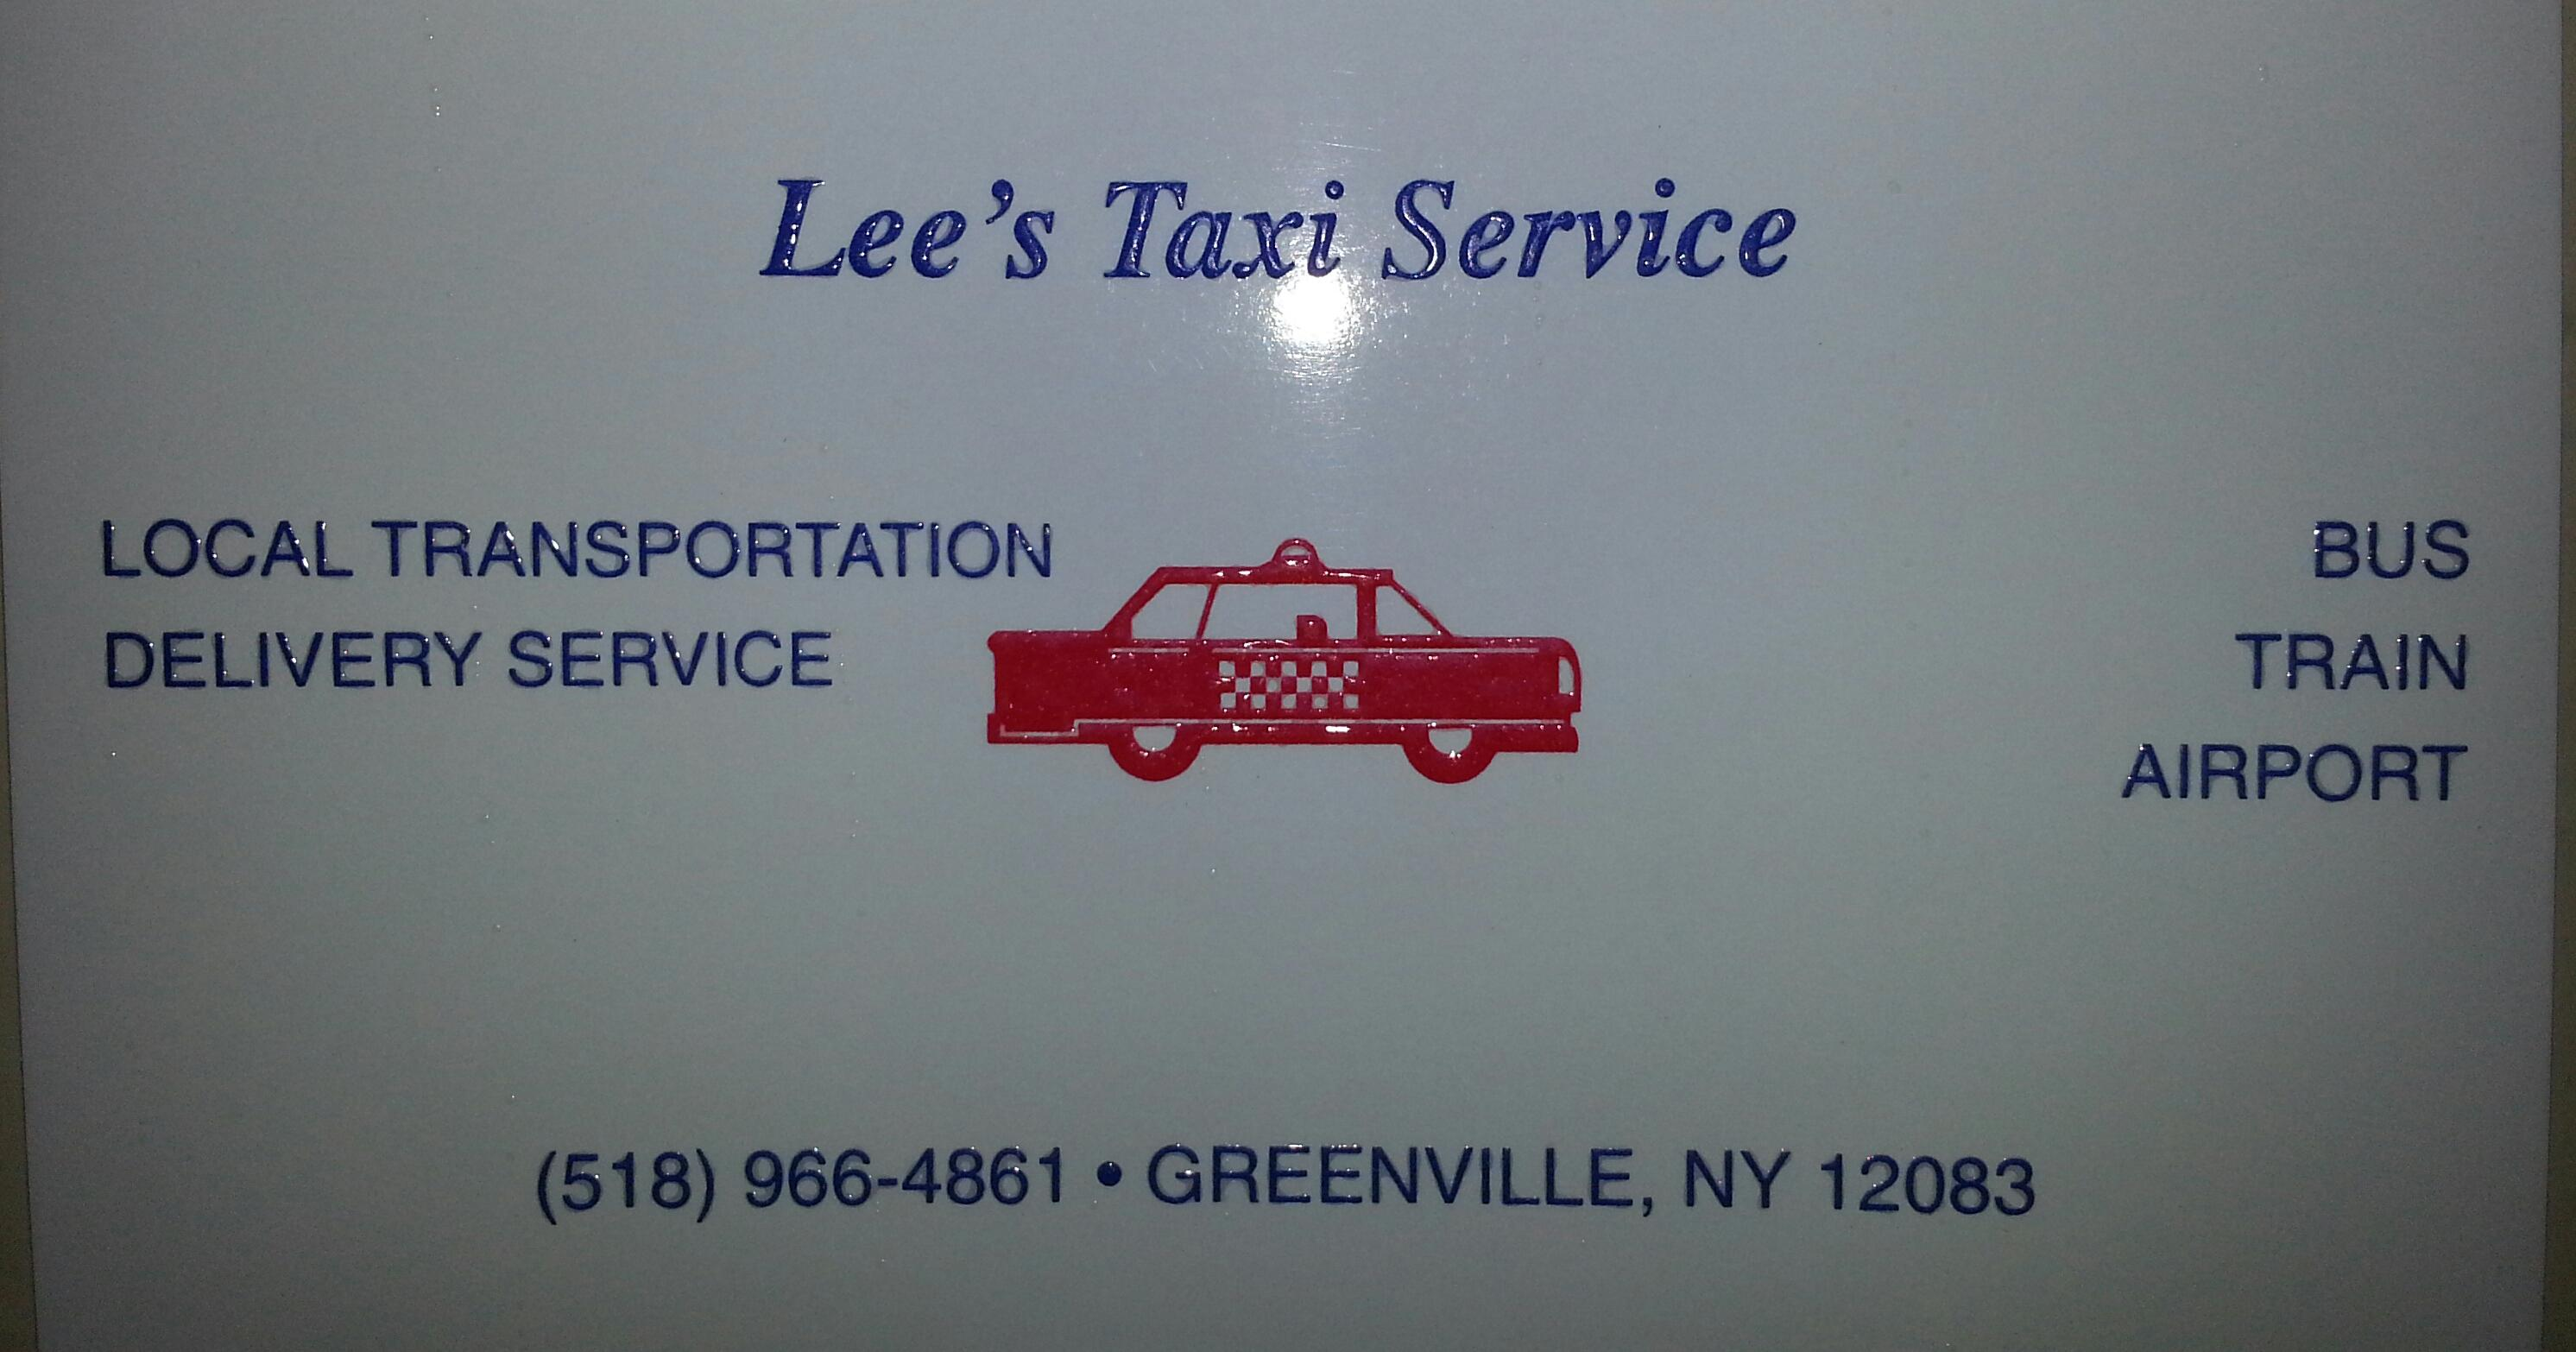 Lee's Taxi